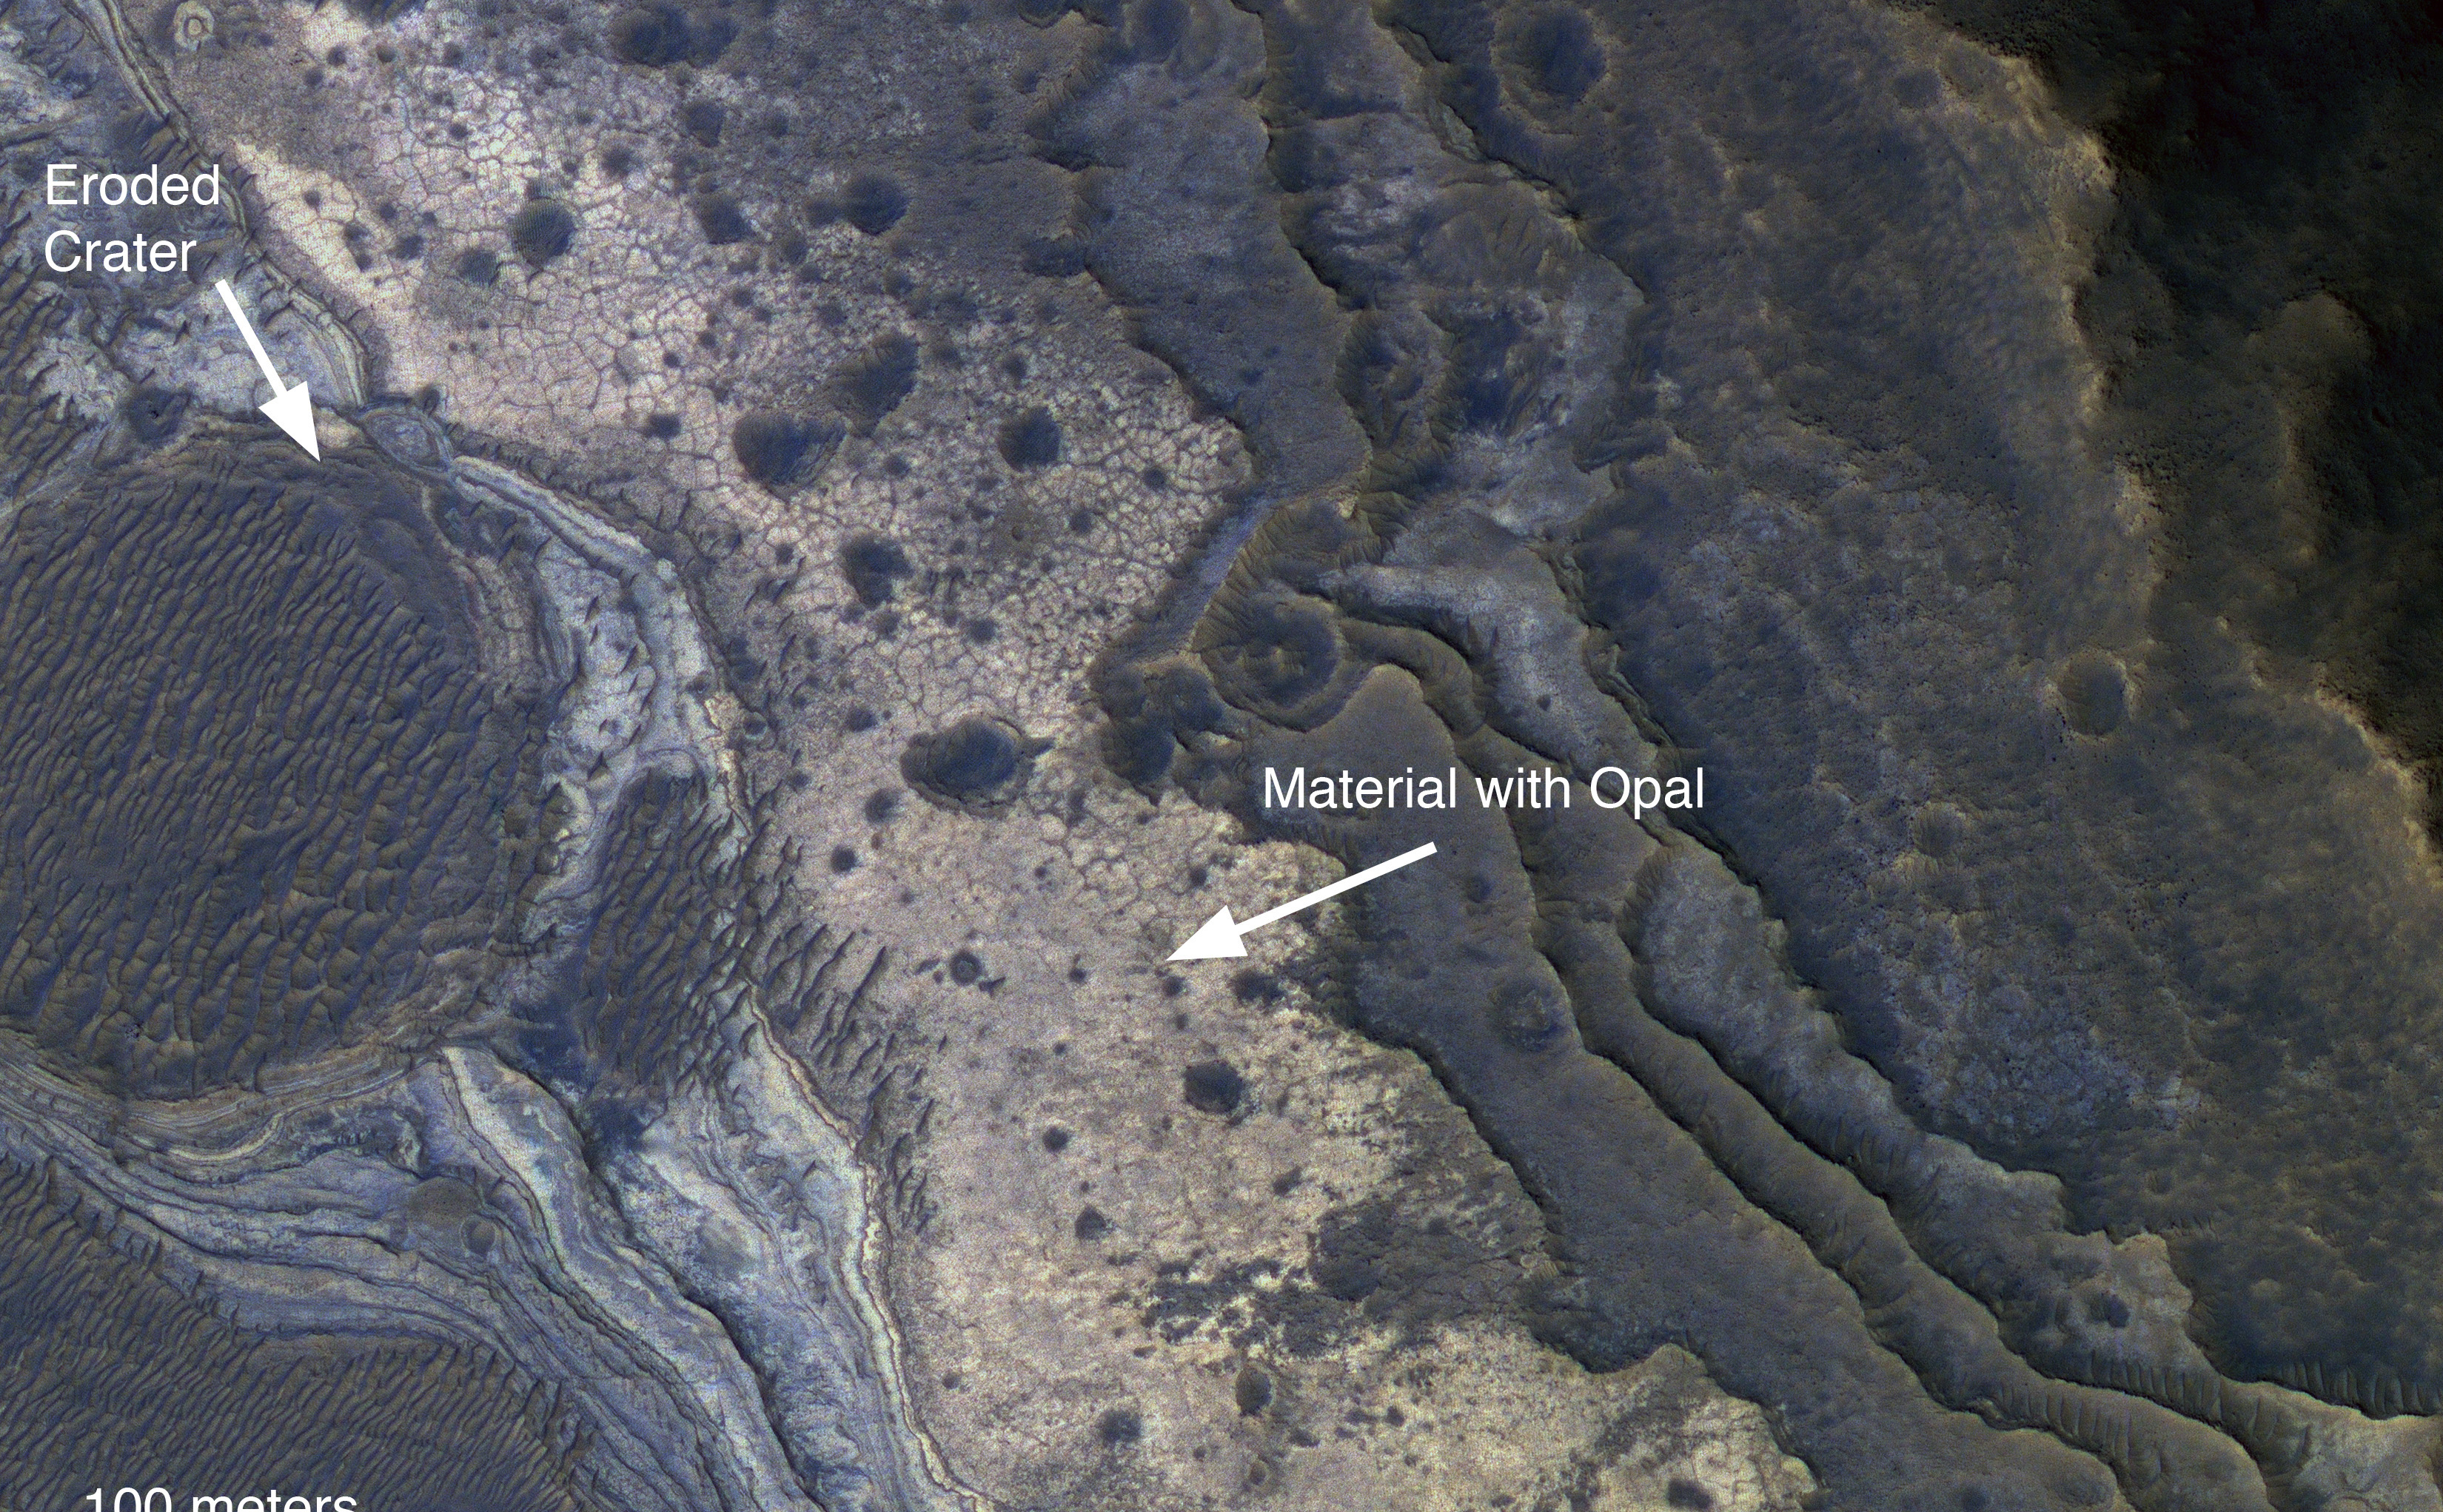 NASA's Mars Reconnaissance Orbiter has revealed Martian rocks containing a hydrated mineral similar to opal. The rocks are light-toned and appear cream-colored in this false-color image taken by the High Resolution Imaging Science Experiment camera. Images acquired by the orbiter reveal that different layers of rock have different properties and chemistry. The opal minerals are located in distinct beds of rock outside of the large Valles Marineris canyon system and are also found in rocks within the canyon. The presence of opal in these relatively young rocks tells scientists that water, possibly as rivers and small ponds, interacted with the surface as recently as two billion years ago, one billion years later than scientists had expected. The discovery of this new category of minerals spread across large regions of Mars suggests that liquid water played an important role in shaping the planet's surface and possibly hosting life.